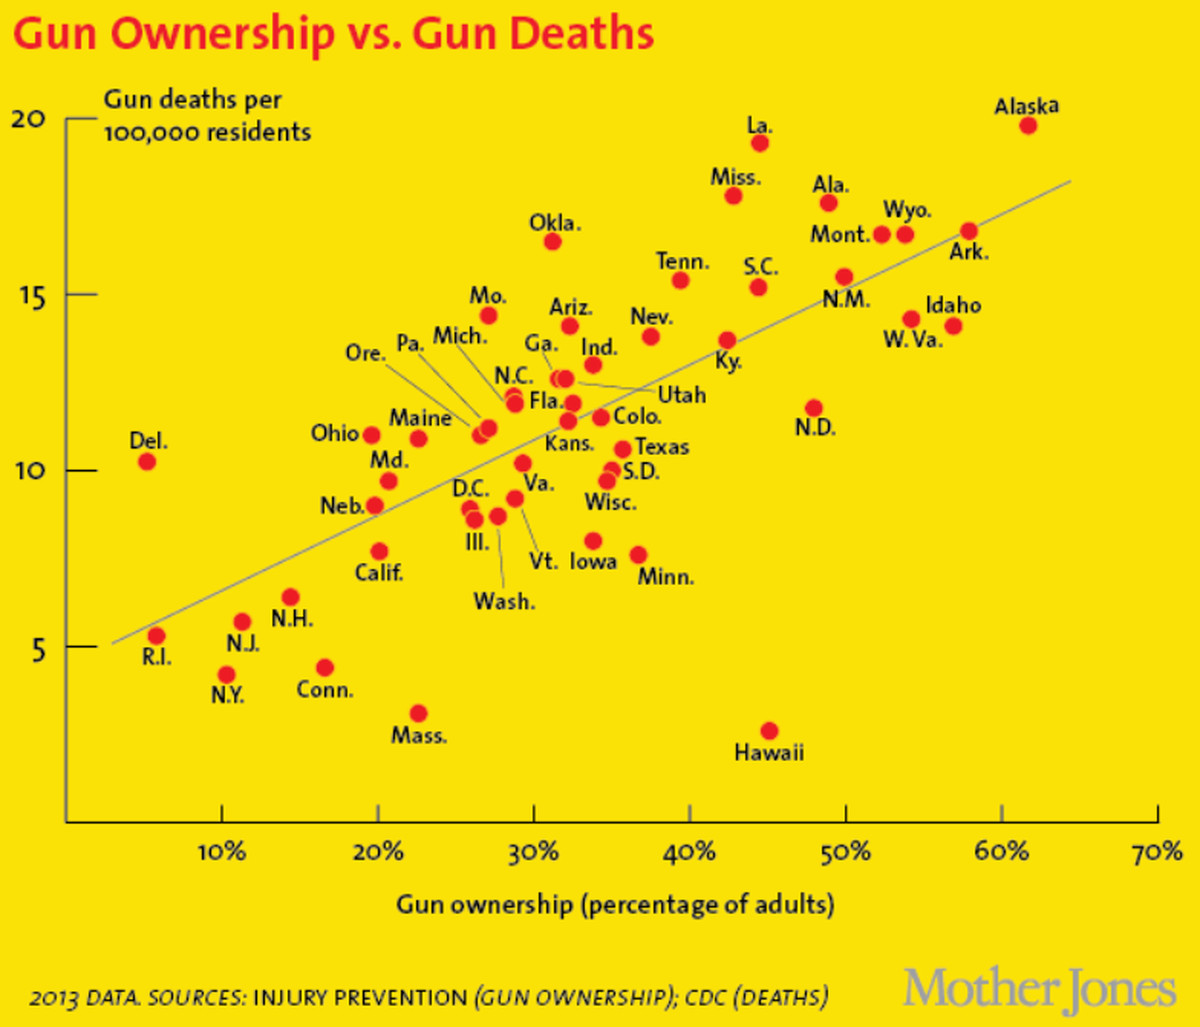 A chart comparing US gun deaths with levels of gun ownership, by state.